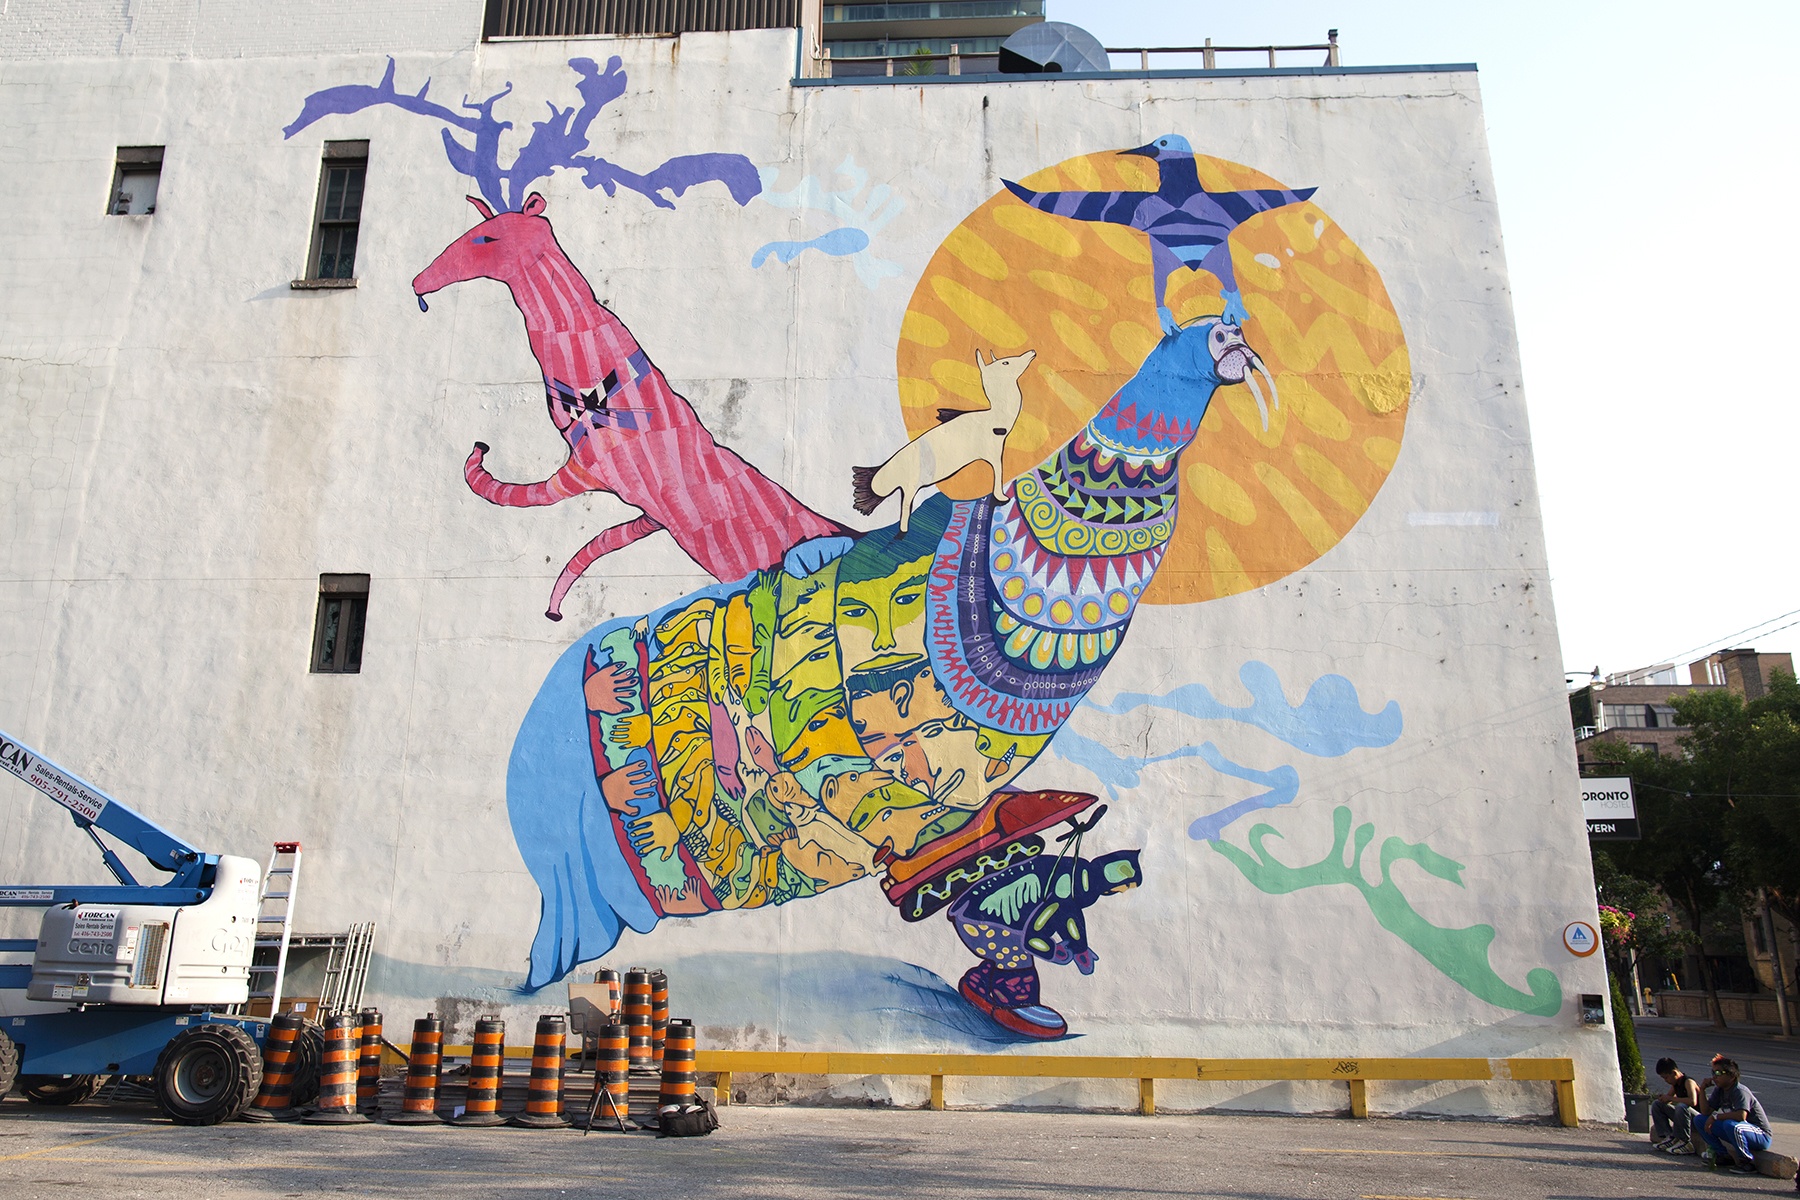 Photo by Tobin Grimshaw, The final mural complete!